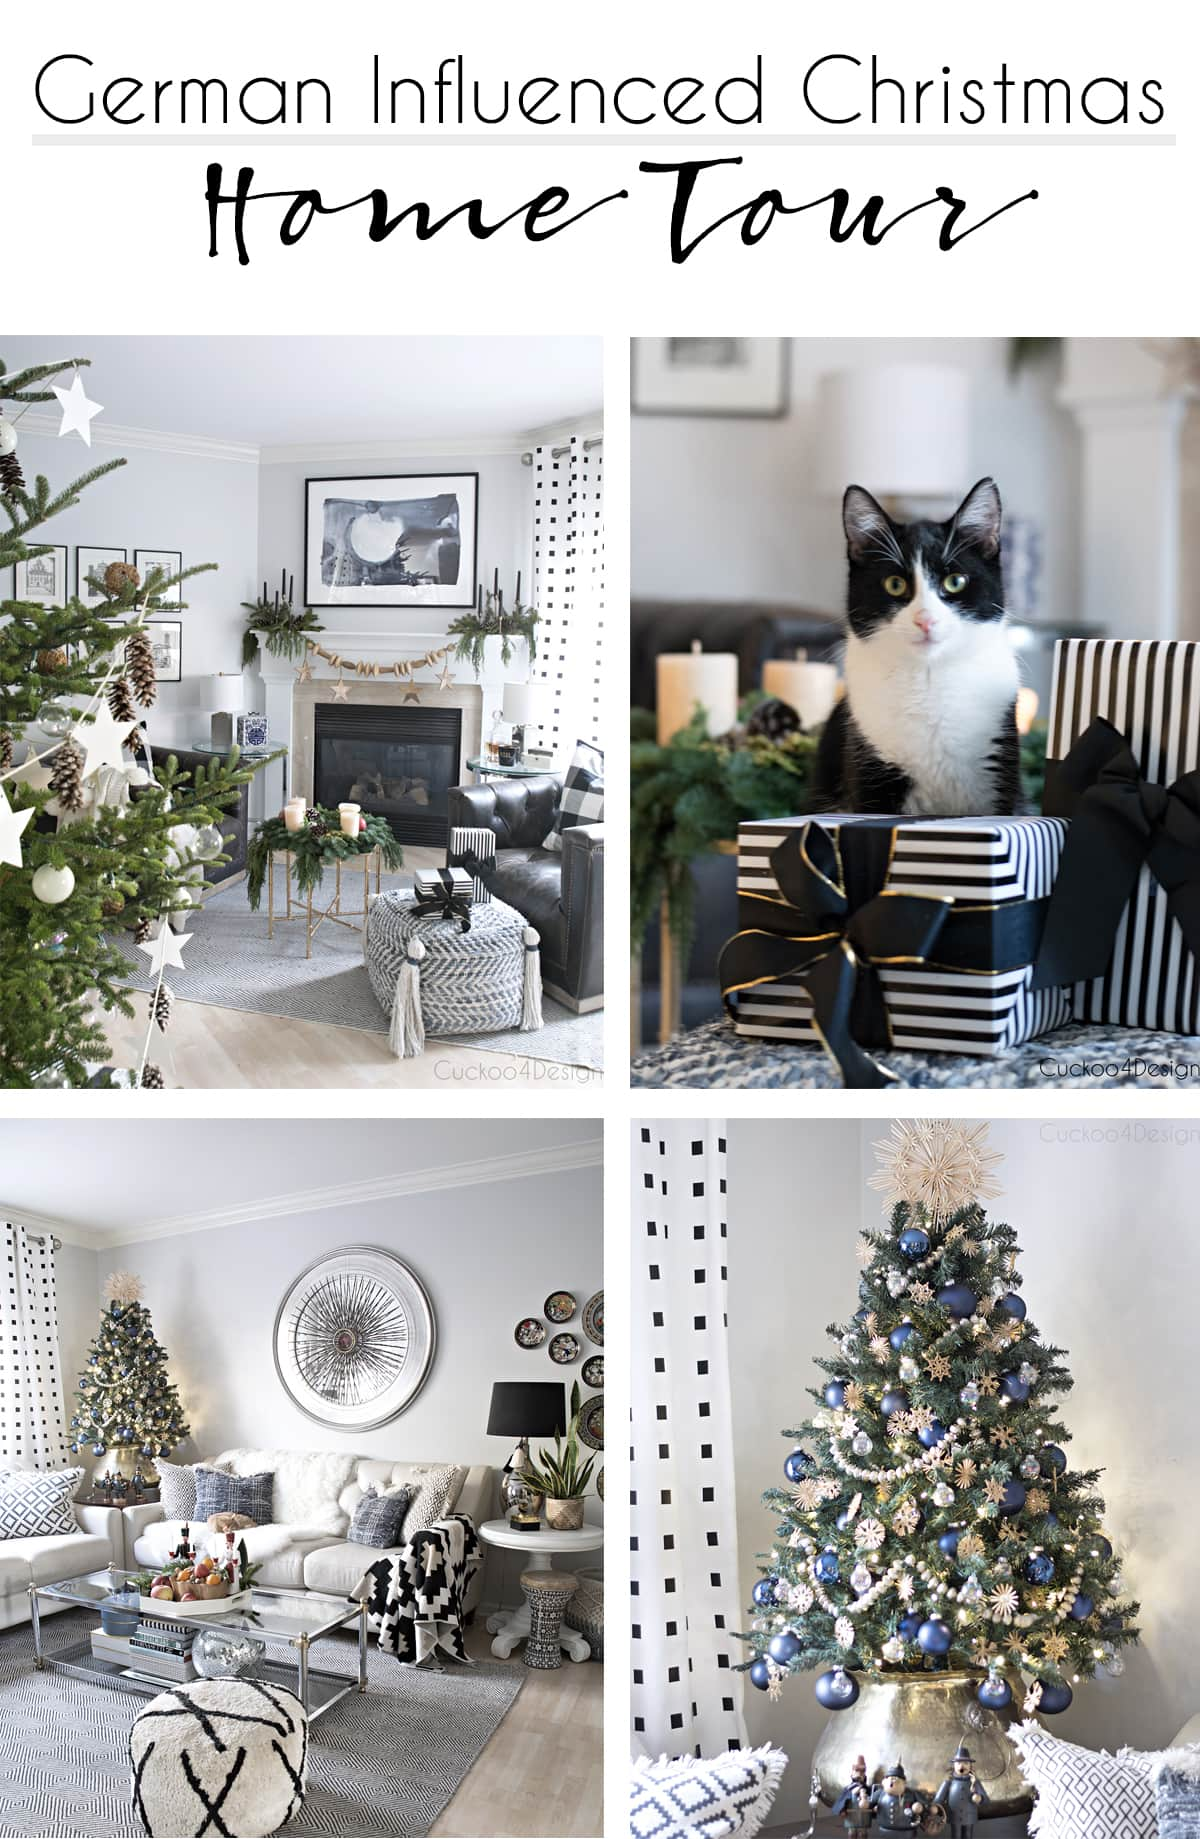 modern Christmas Home Tour with traditional German decor accents like incense smokers, advent wreath, straw stars, vintage Christmas stars, miner and angel